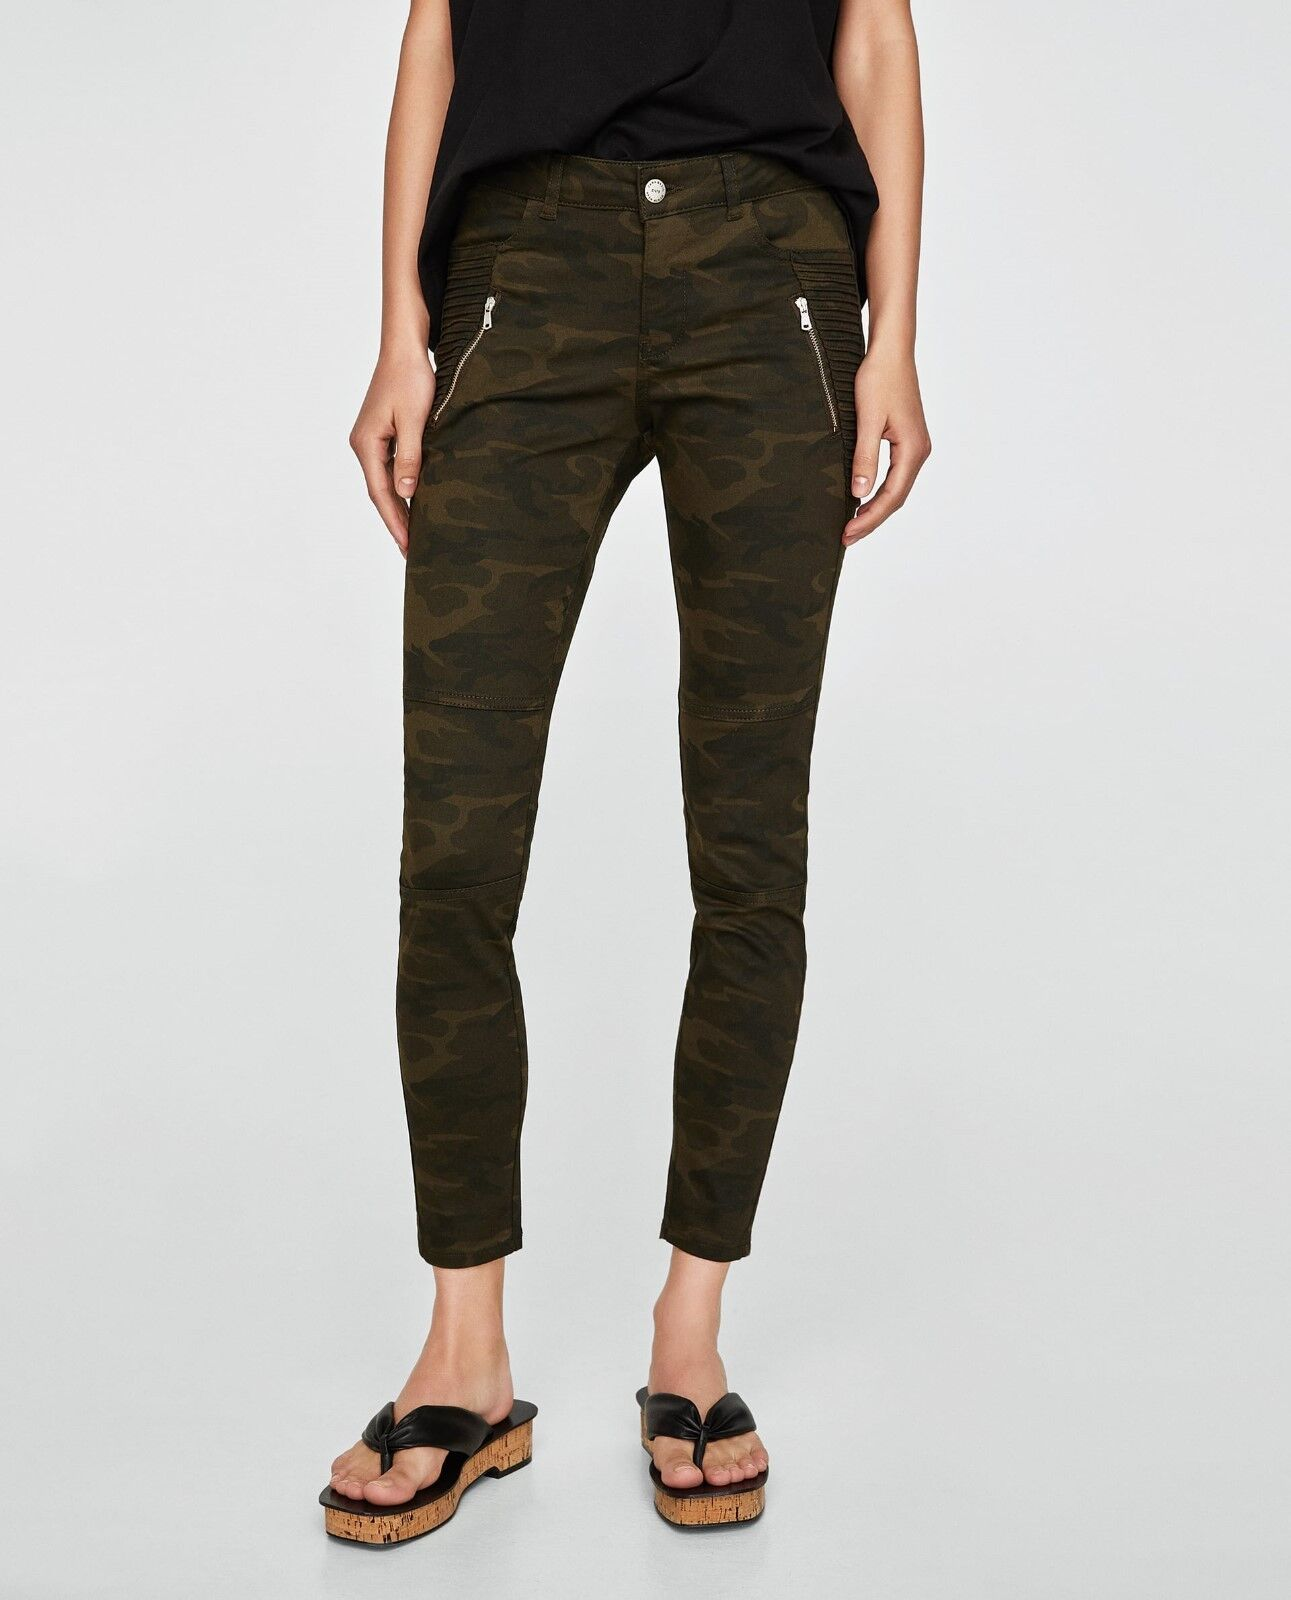 NWT ZARA POWER STRETCH CAMOUFLAGE TROUSERS SIZE 4 SOLD OUT